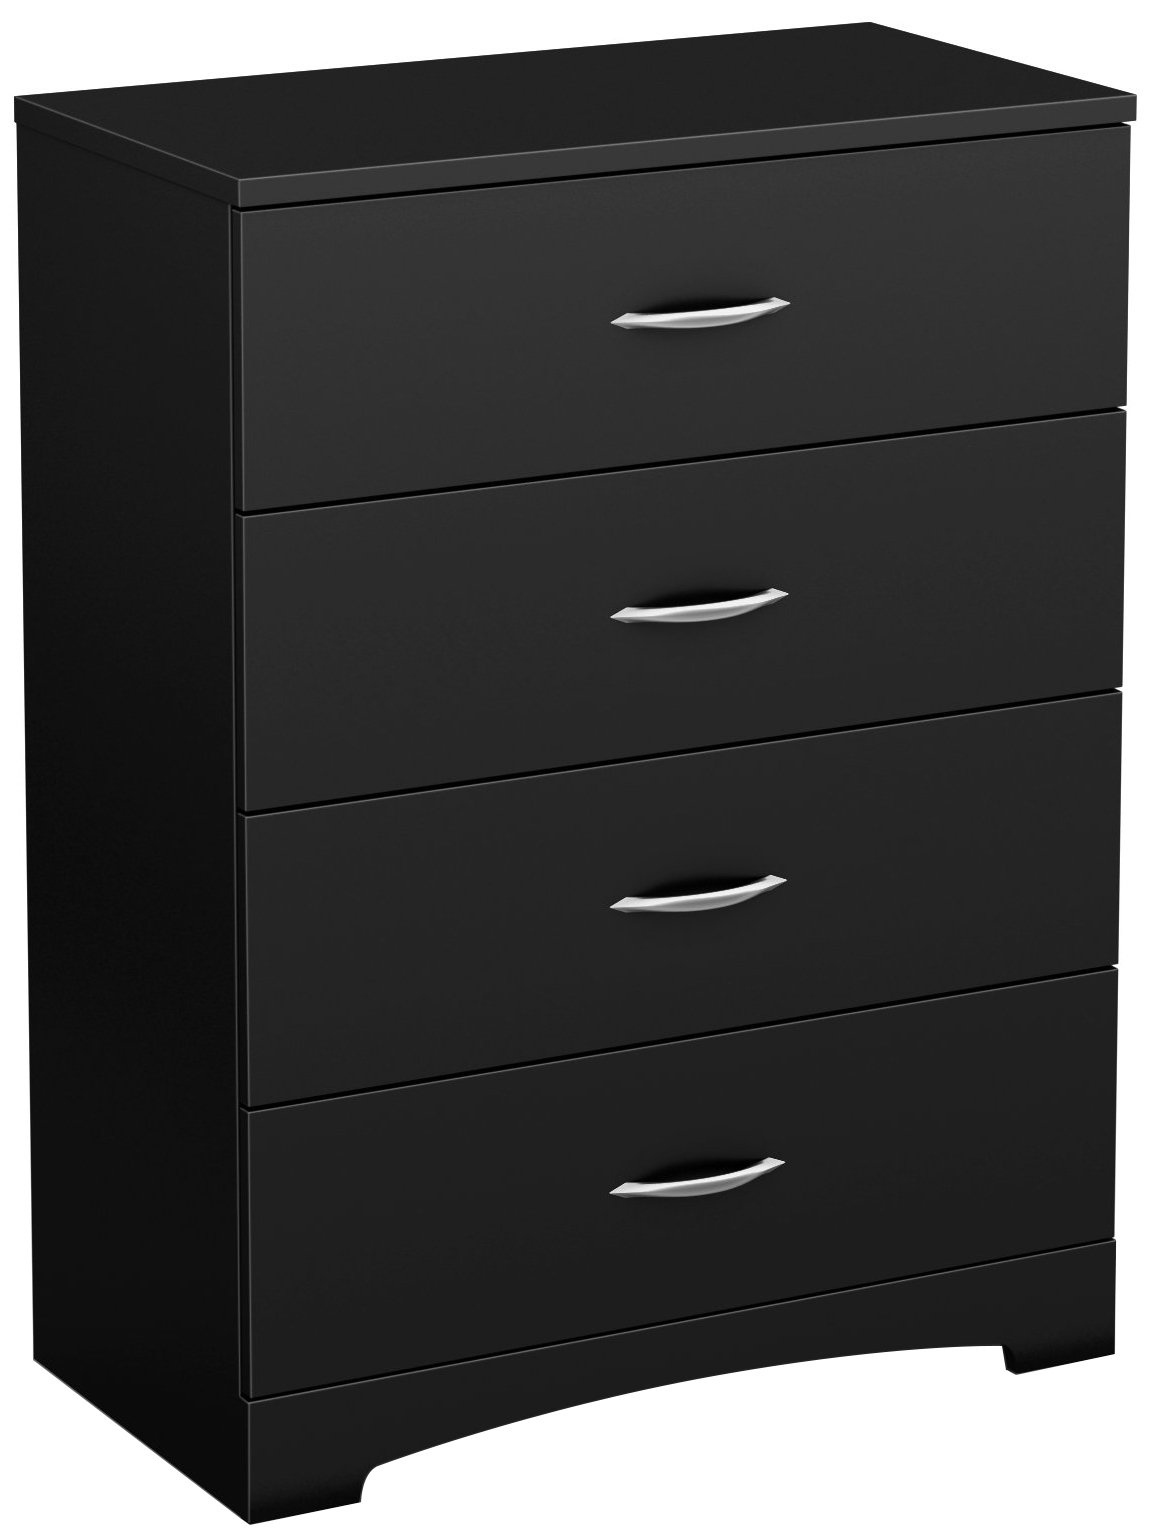 South Shore Step One 4-Drawer Dresser, Pure Black with Matte Nickel Handles